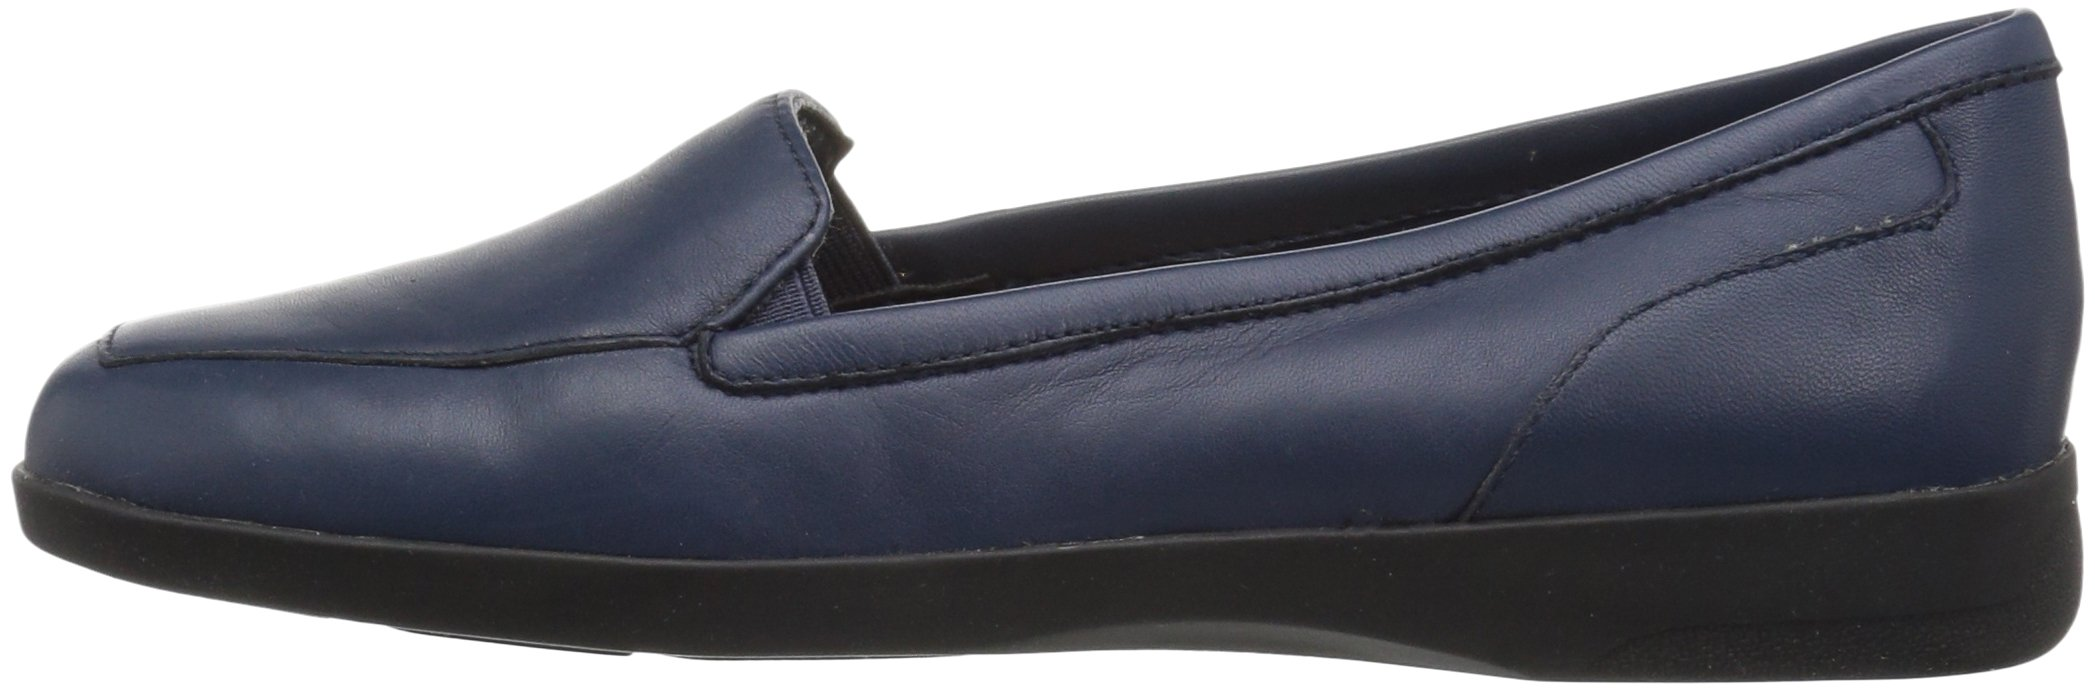 Easy Spirit Women's Devitt Oxford Flat, Blue, 5 M US by Easy Spirit (Image #5)